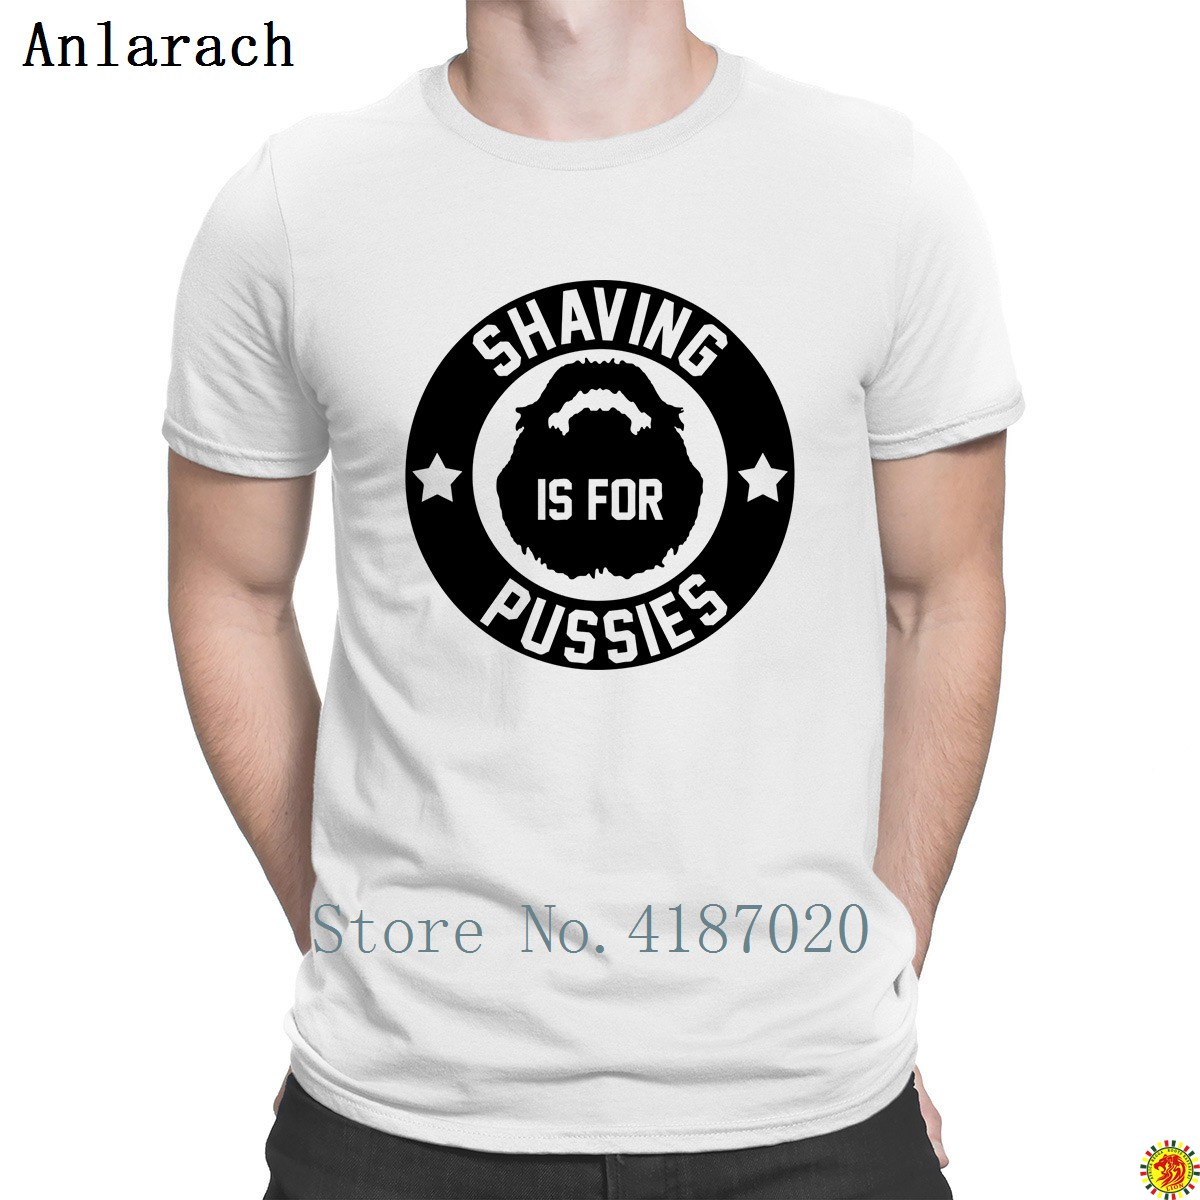 <font><b>Shaving</b></font> Is For Pussies T <font><b>Shirt</b></font> Hot Sale Great Letter Designing Men's T <font><b>Shirt</b></font> 100% Cotton Latest 2018 Tee <font><b>Shirt</b></font> HipHop image